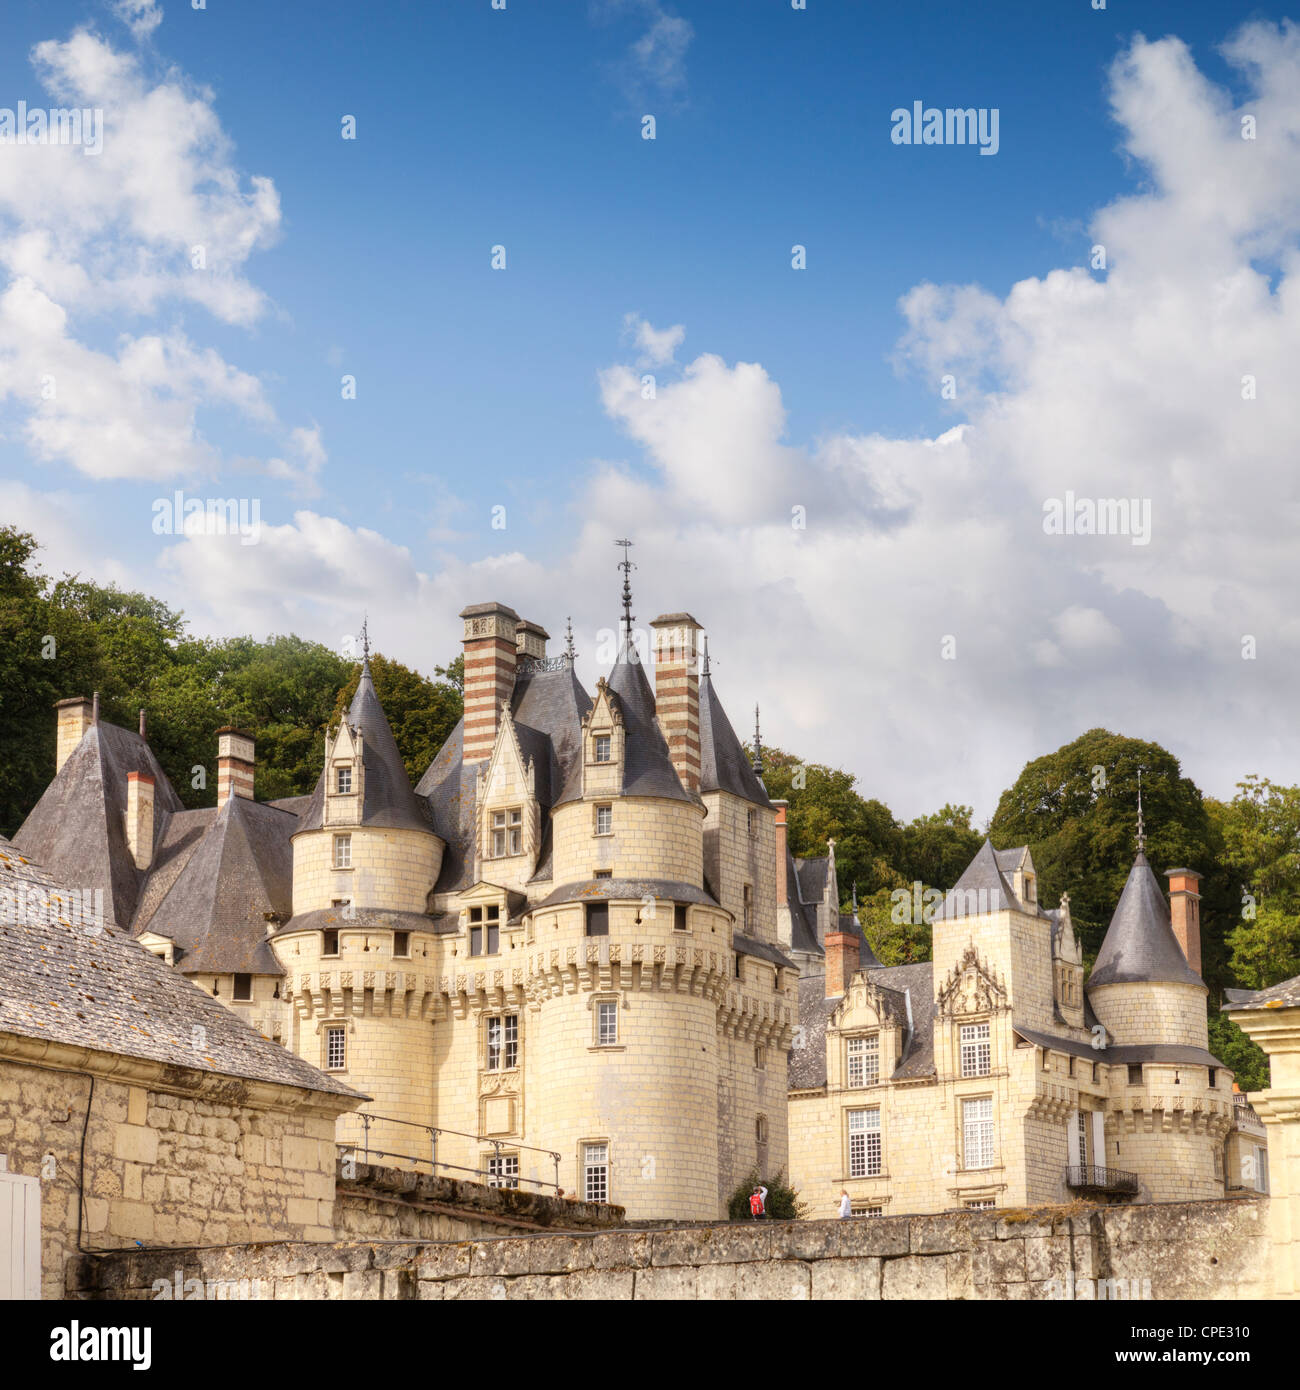 Chateau Usse, Rigny-Usse, Loire Valley, France. - Stock Image